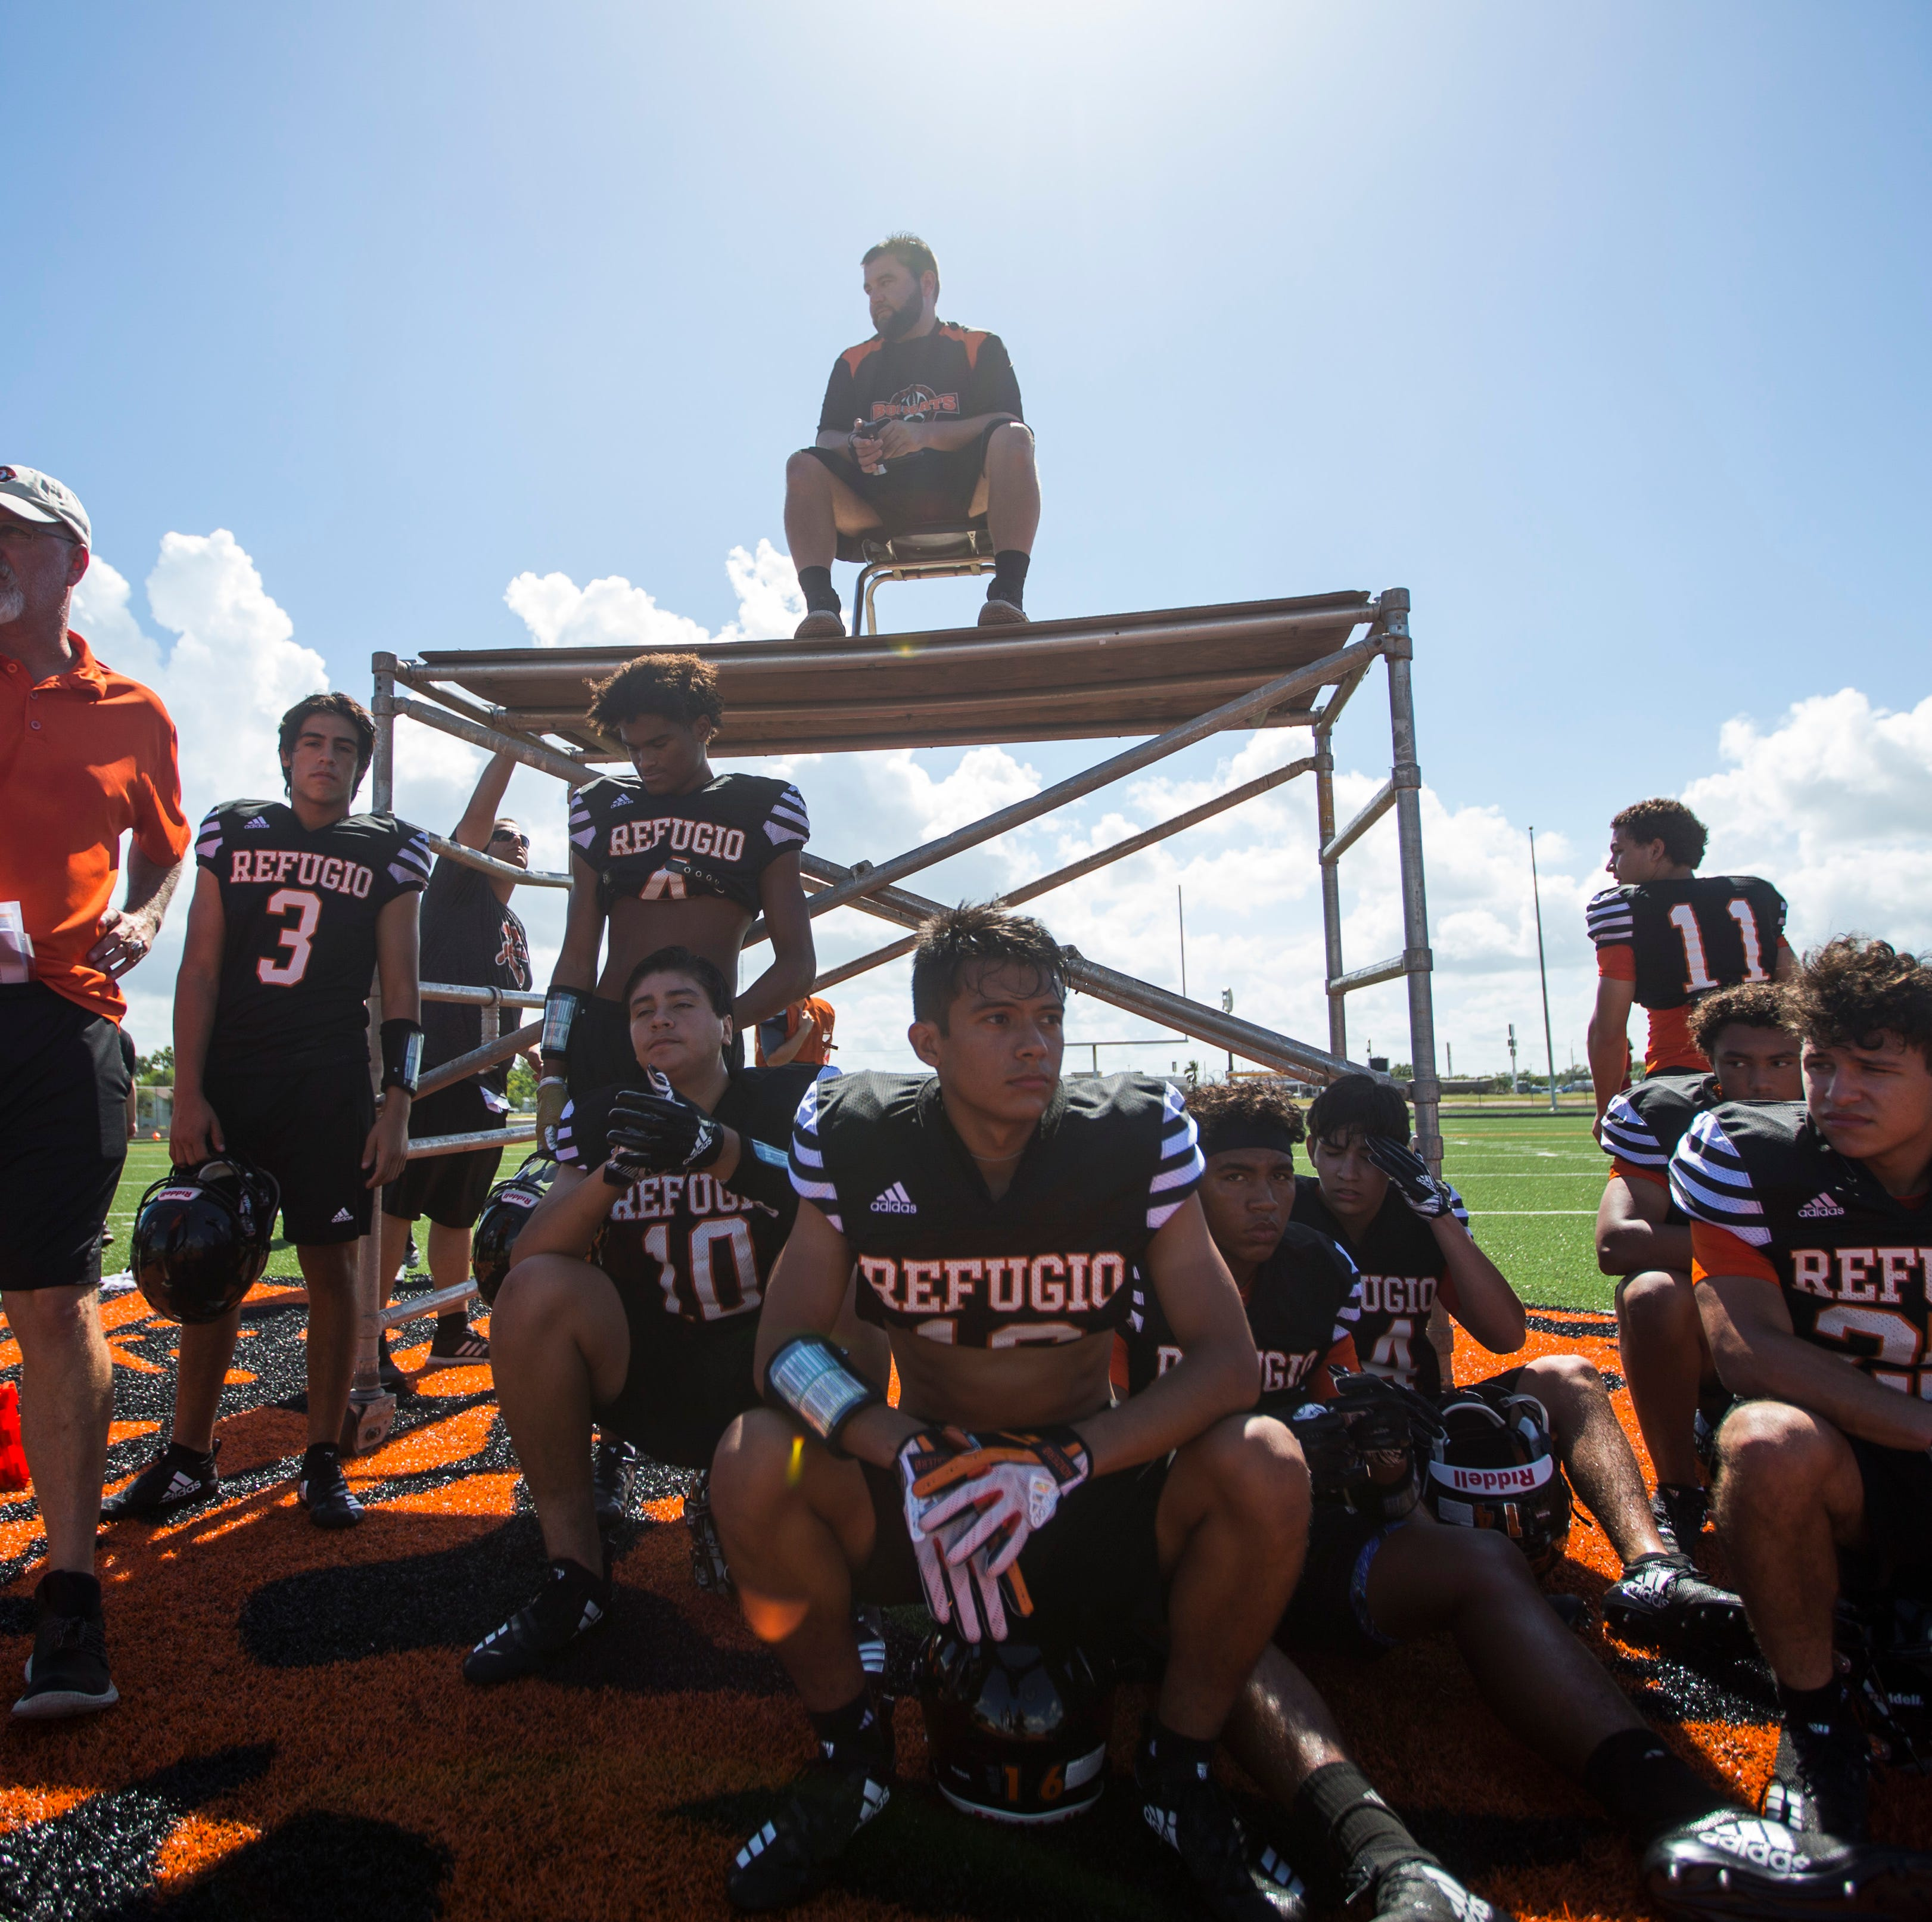 Refugio earns No. 1 spot in AP Preseason 2A high school football rankings